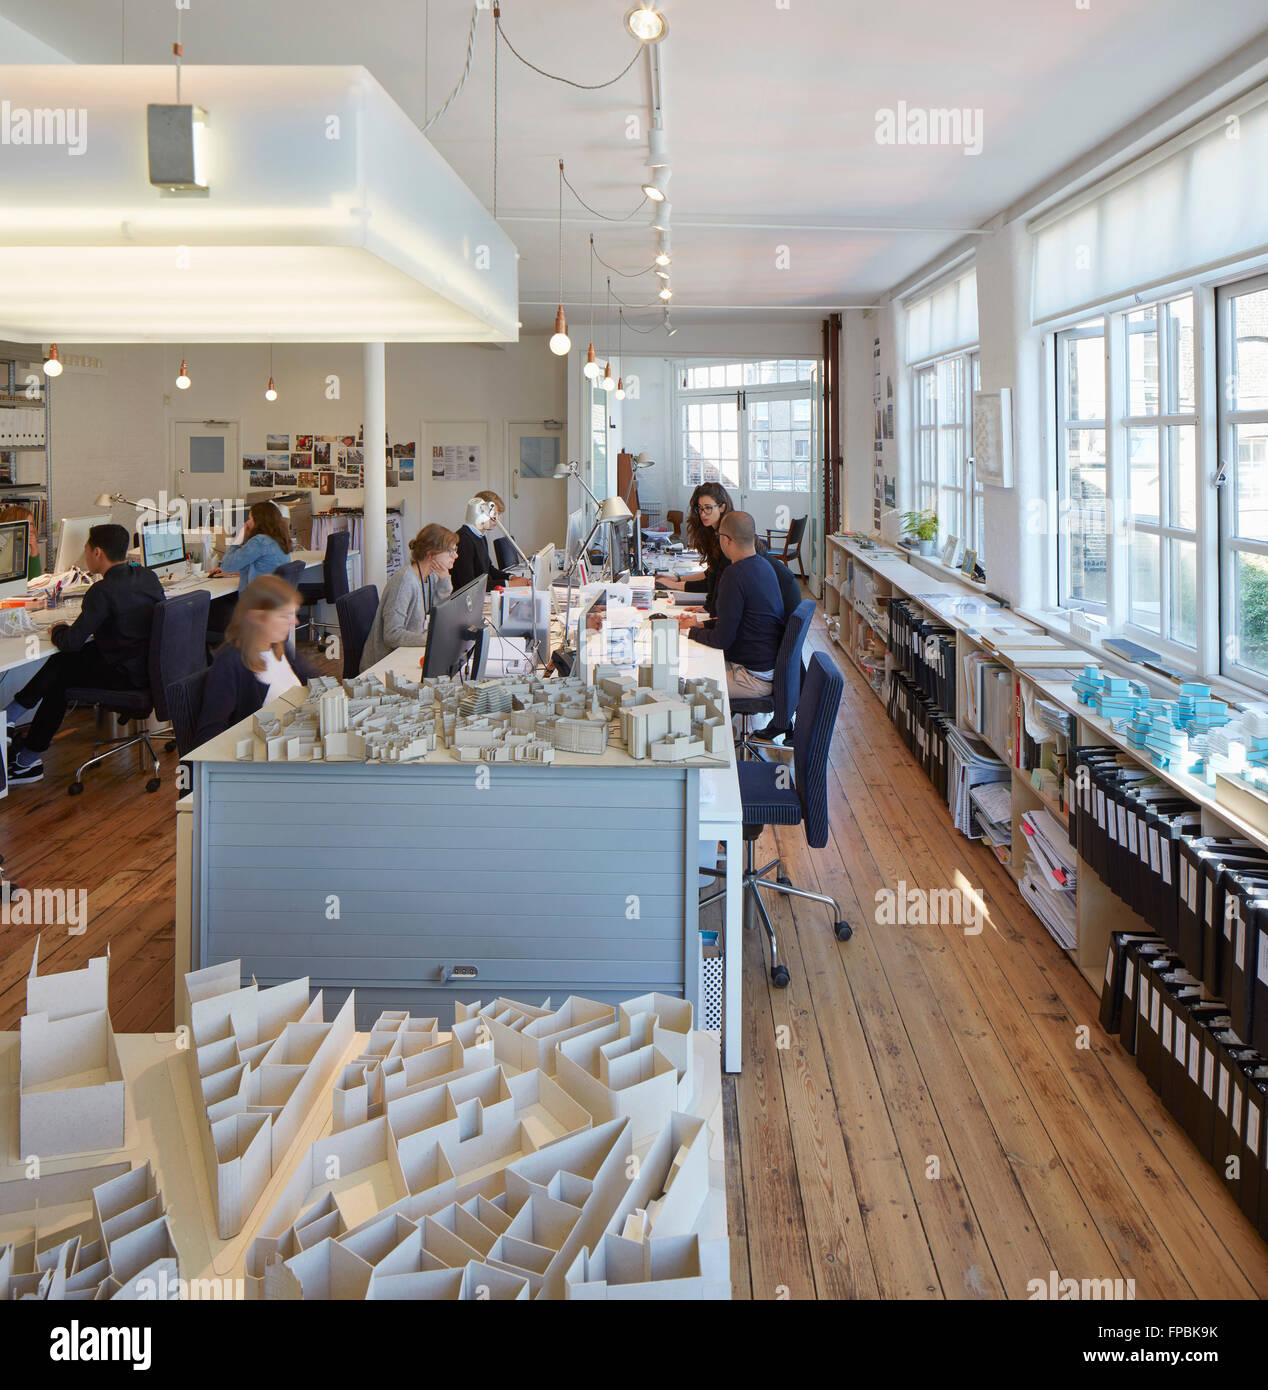 Models and work desks with ample daylight. DSDHA architectural office, London, United Kingdom. Architect: DSDHA, - Stock Image